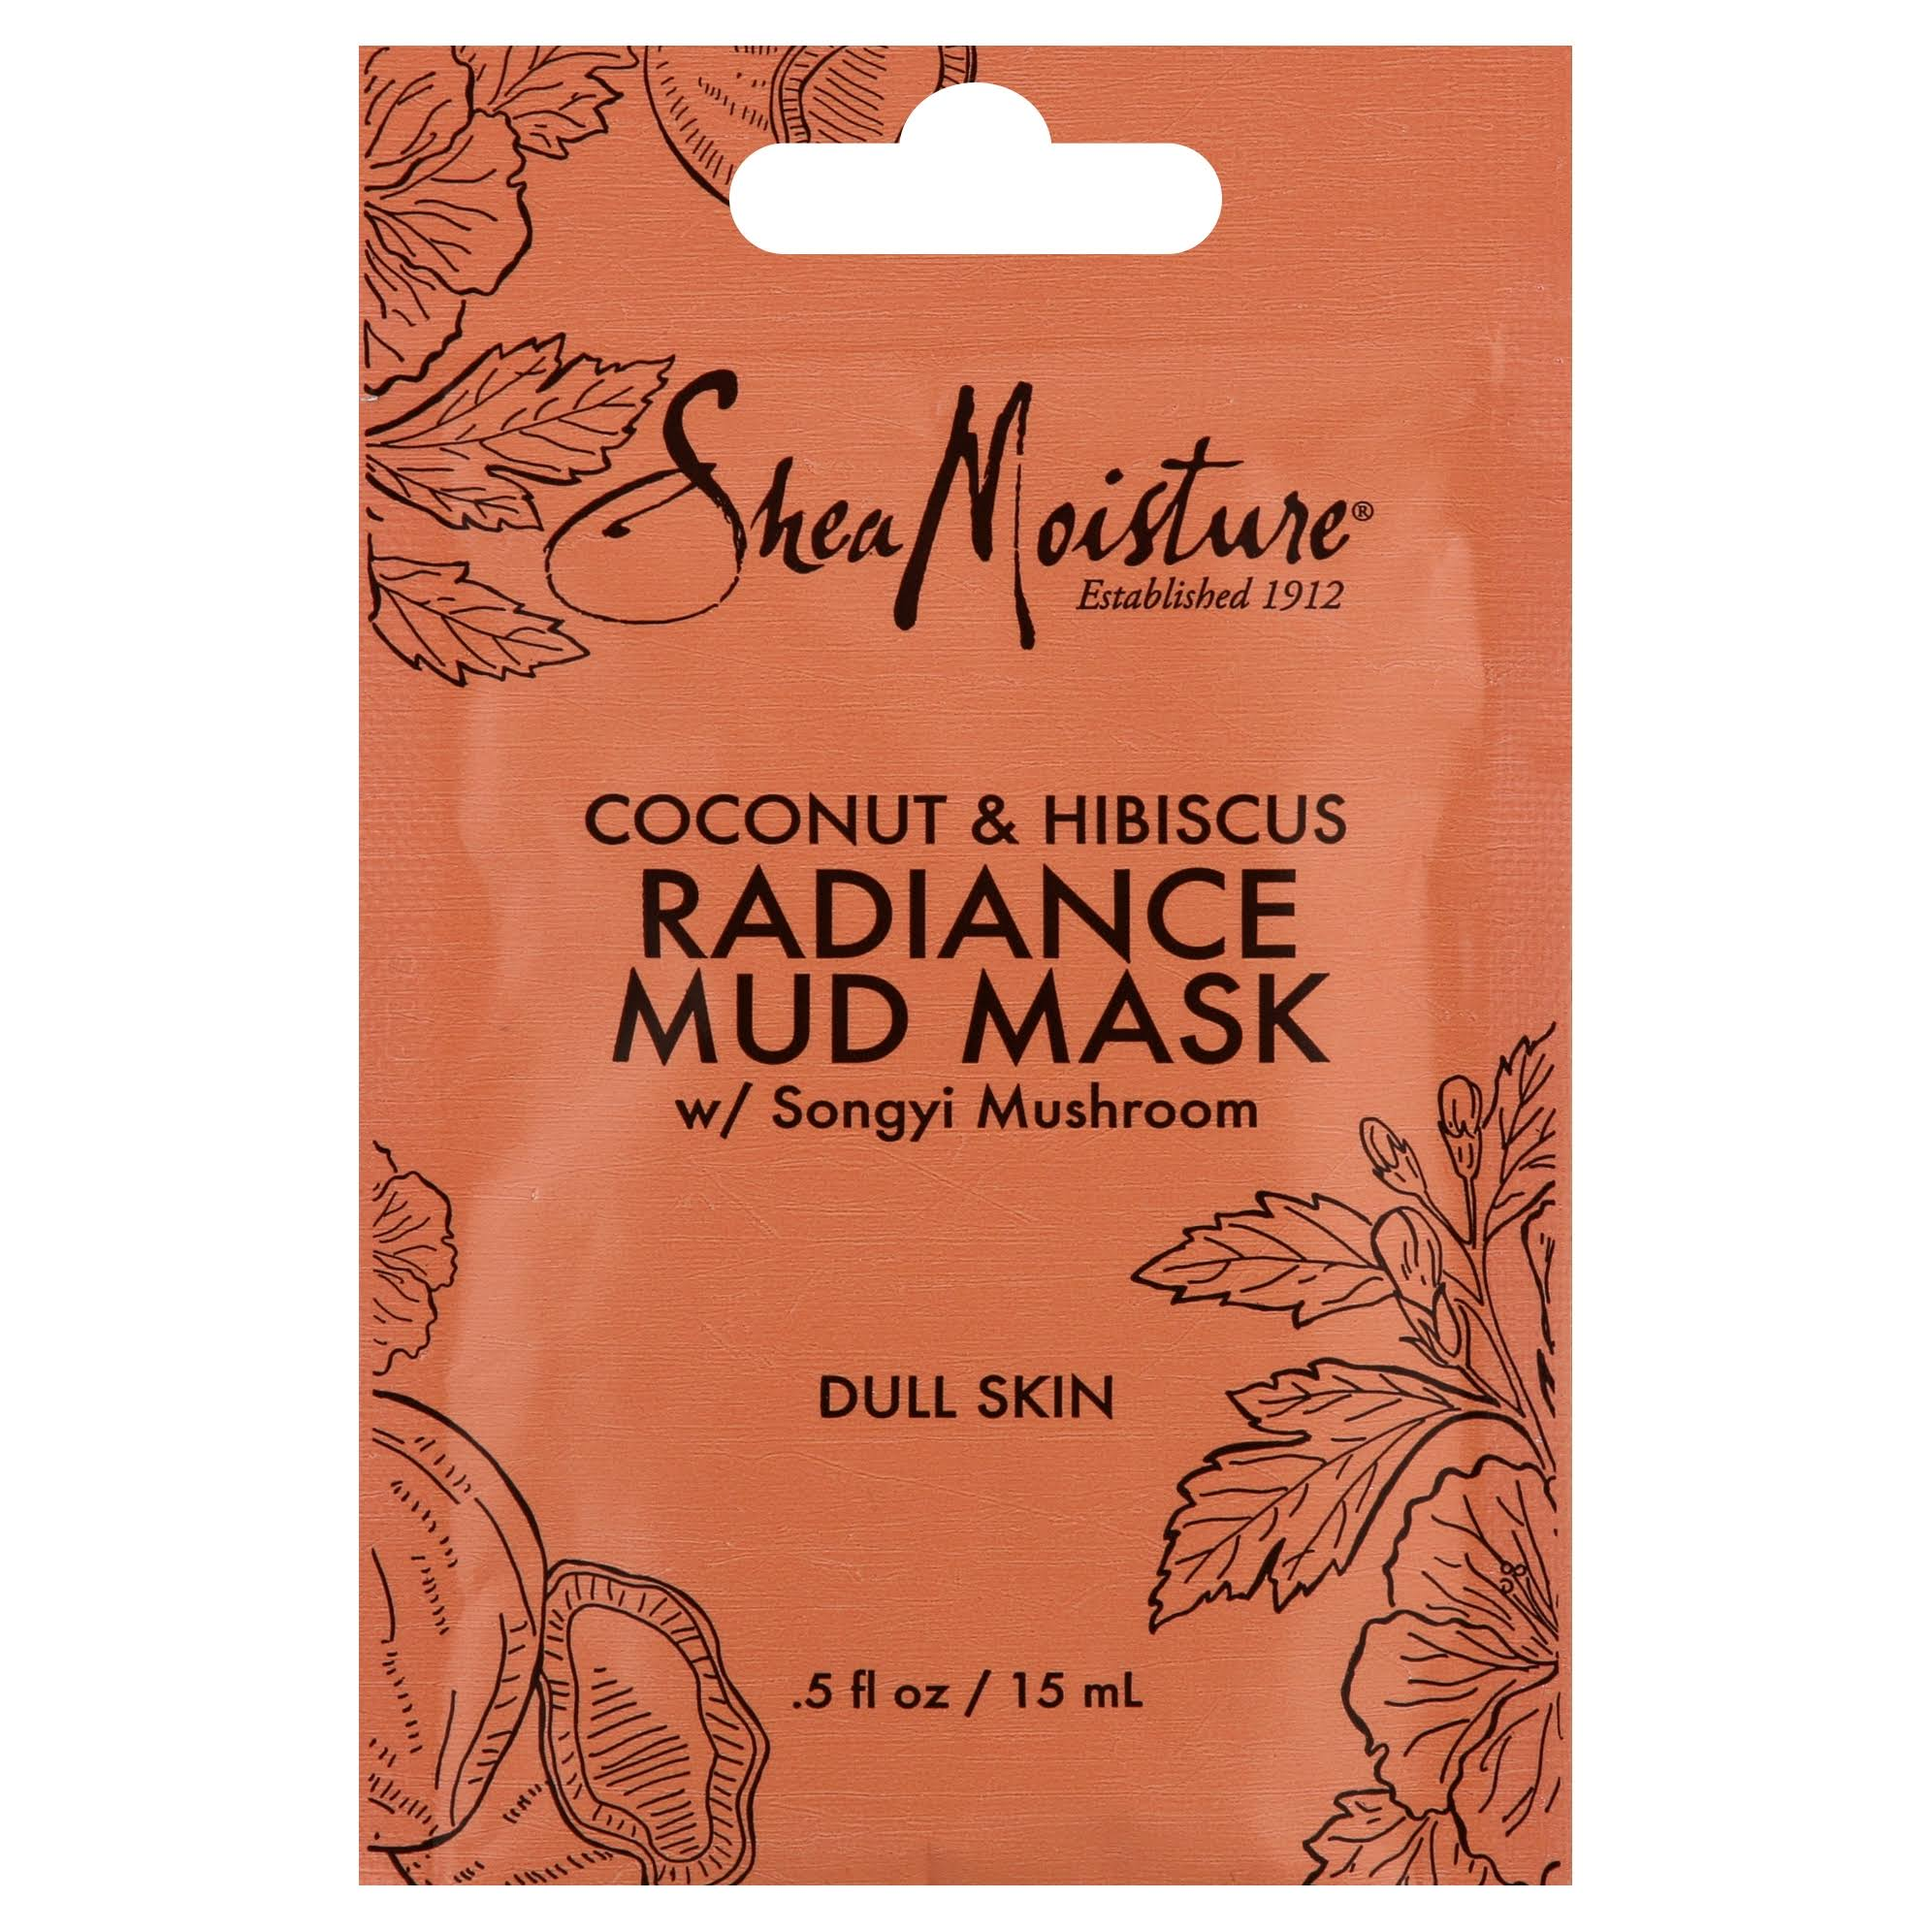 Shea Moisture Radiance Mud Mask - Coconut and Hibiscus, 0.5oz